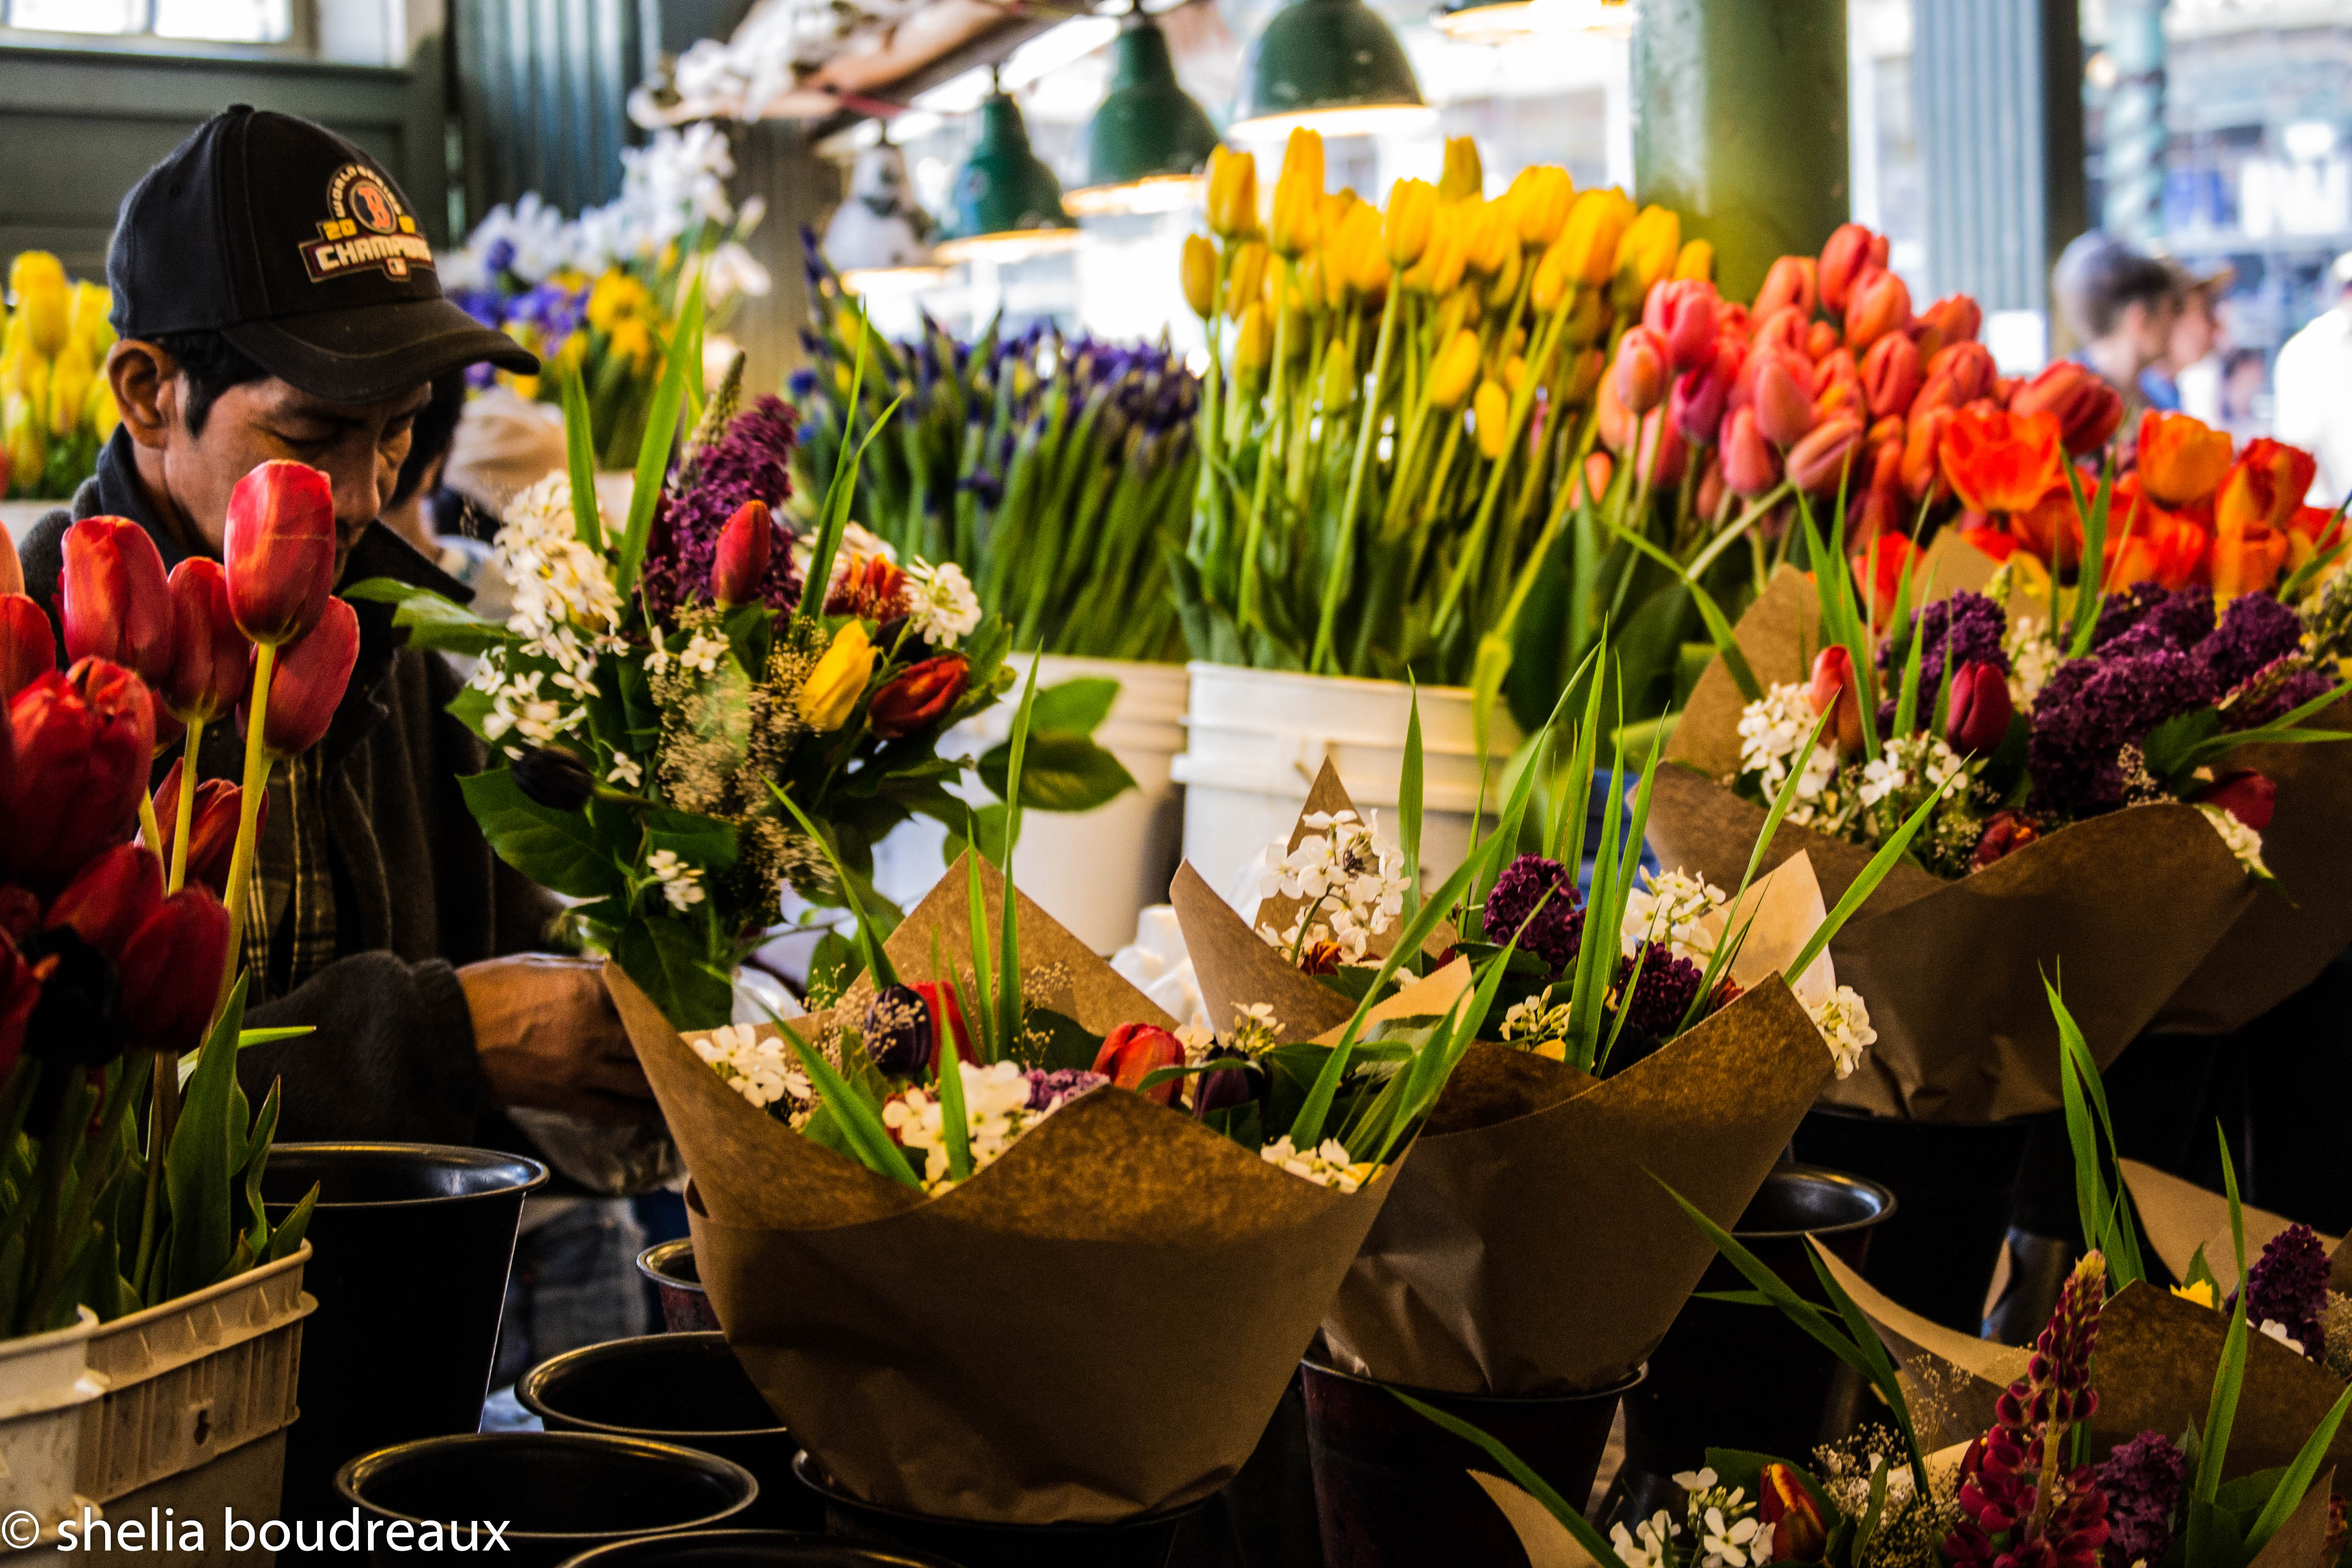 The big thing at the public market is the flowers. They are beautiful and everywhere to buy!